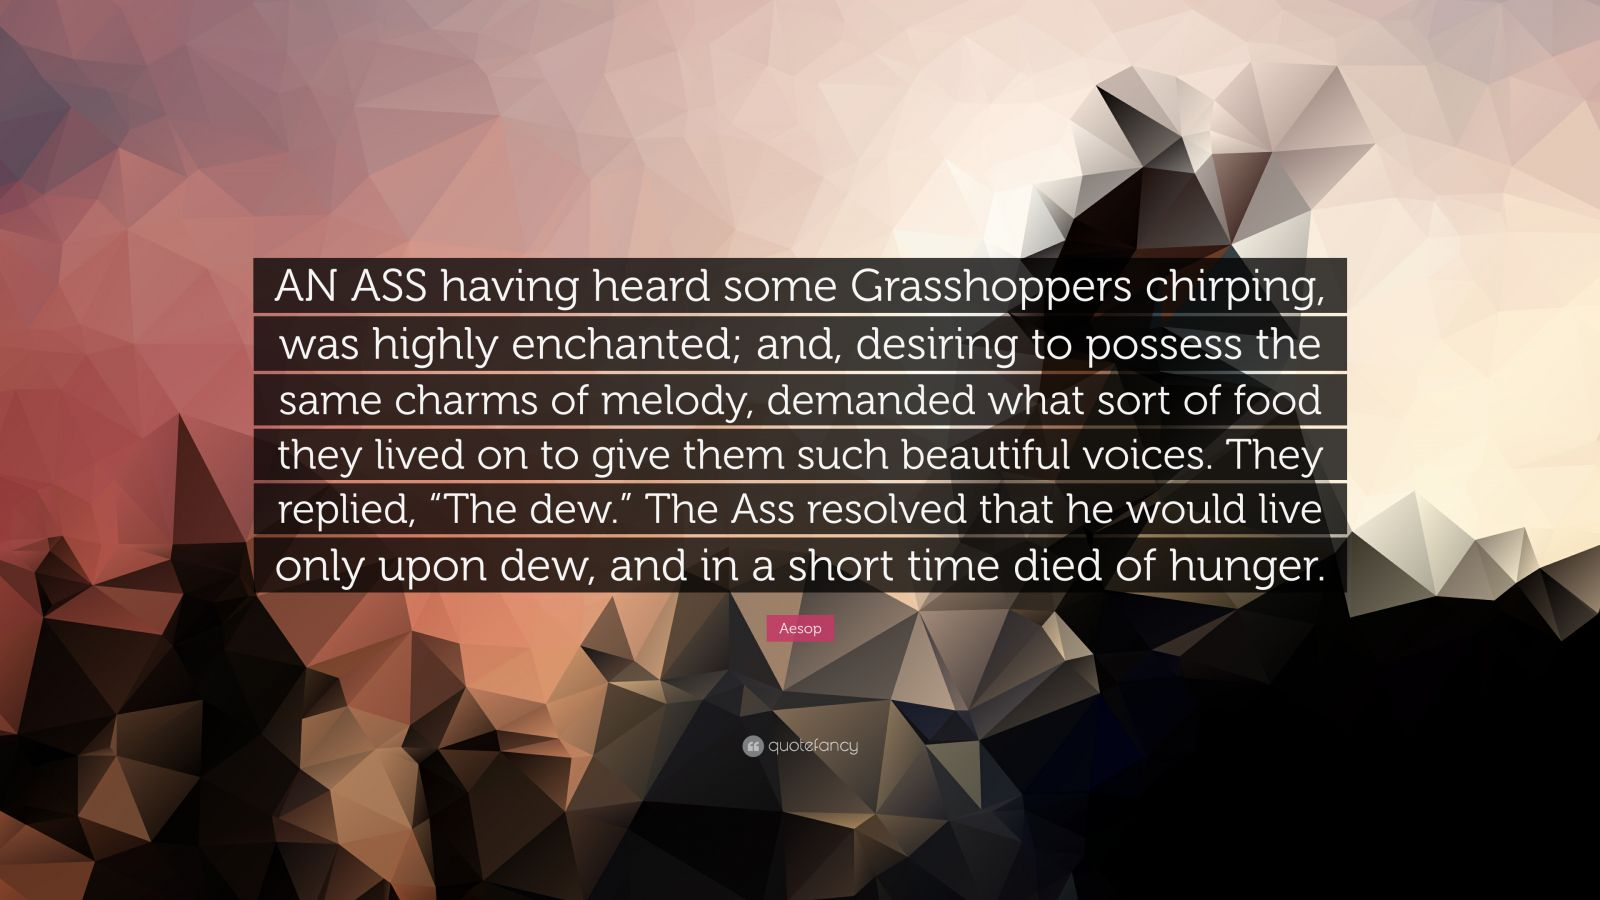 """Aesop Quote: """"AN ASS having heard some Grasshoppers chirping, was highly enchanted; and, desiring to possess the same charms of melody, demanded what sort of food they lived on to give them such beautiful voices. They replied, """"The dew."""" The Ass resolved that he would live only upon dew, and in a short time died of hunger."""""""